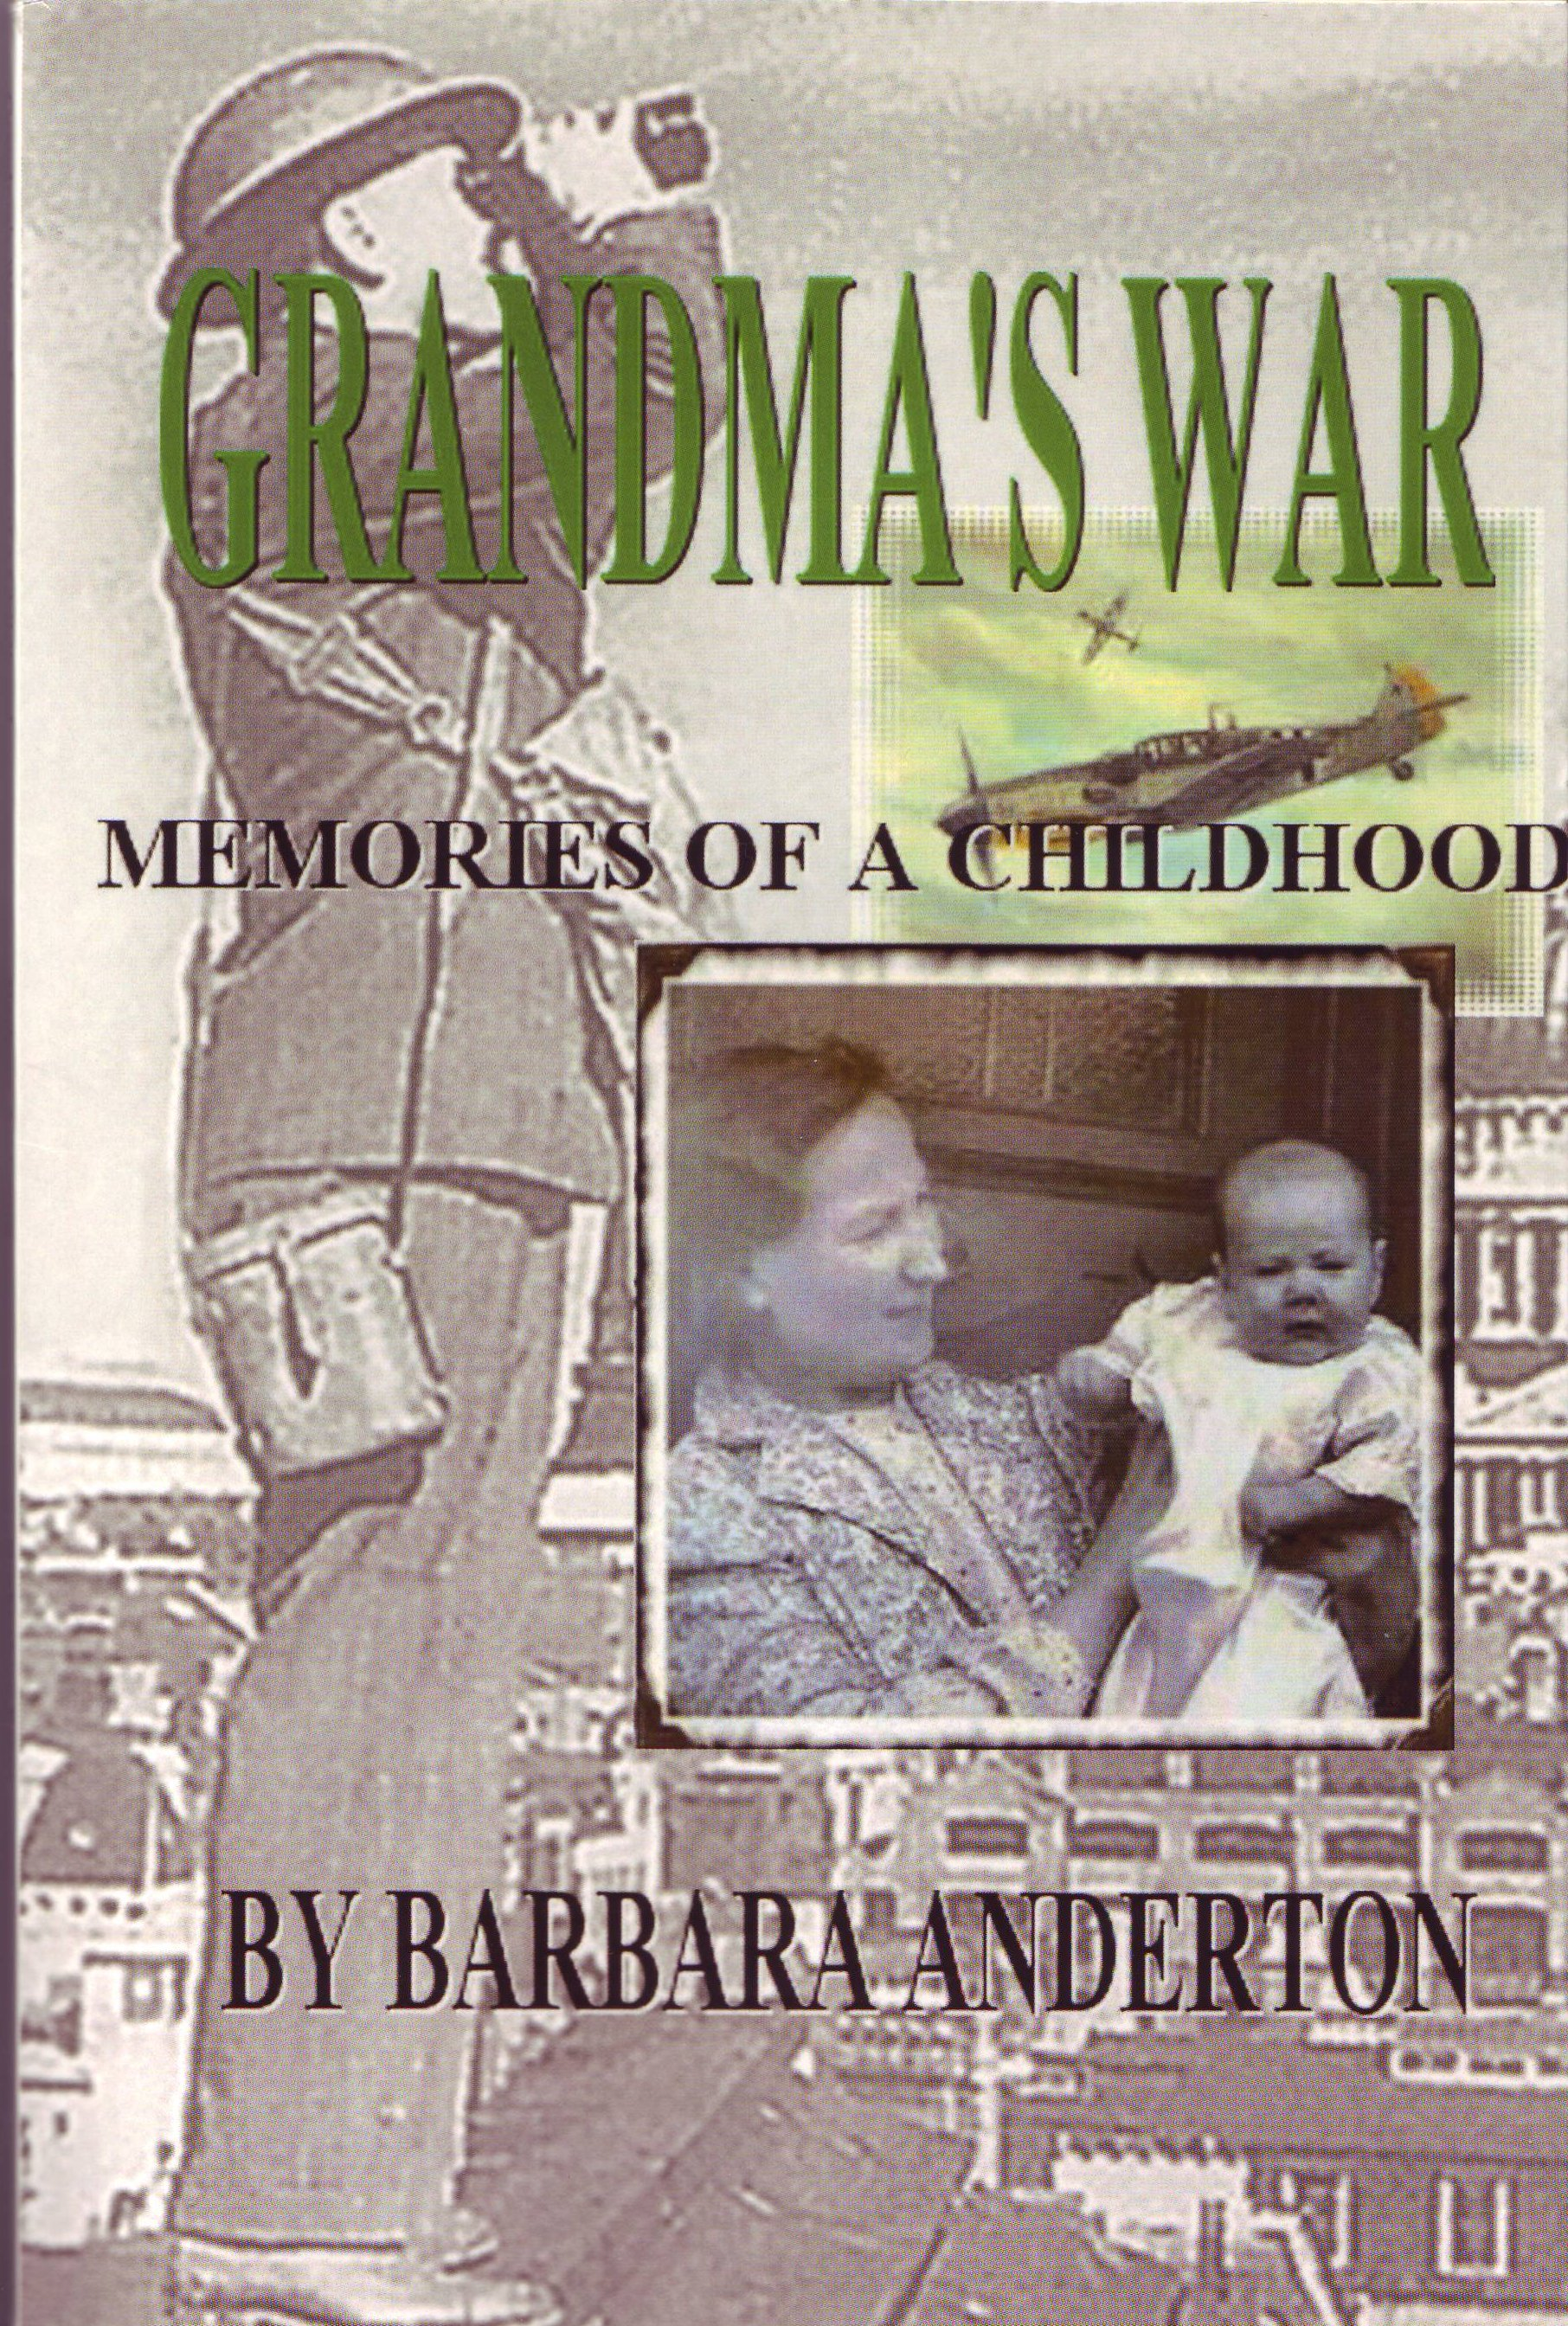 My Book Grandma's War